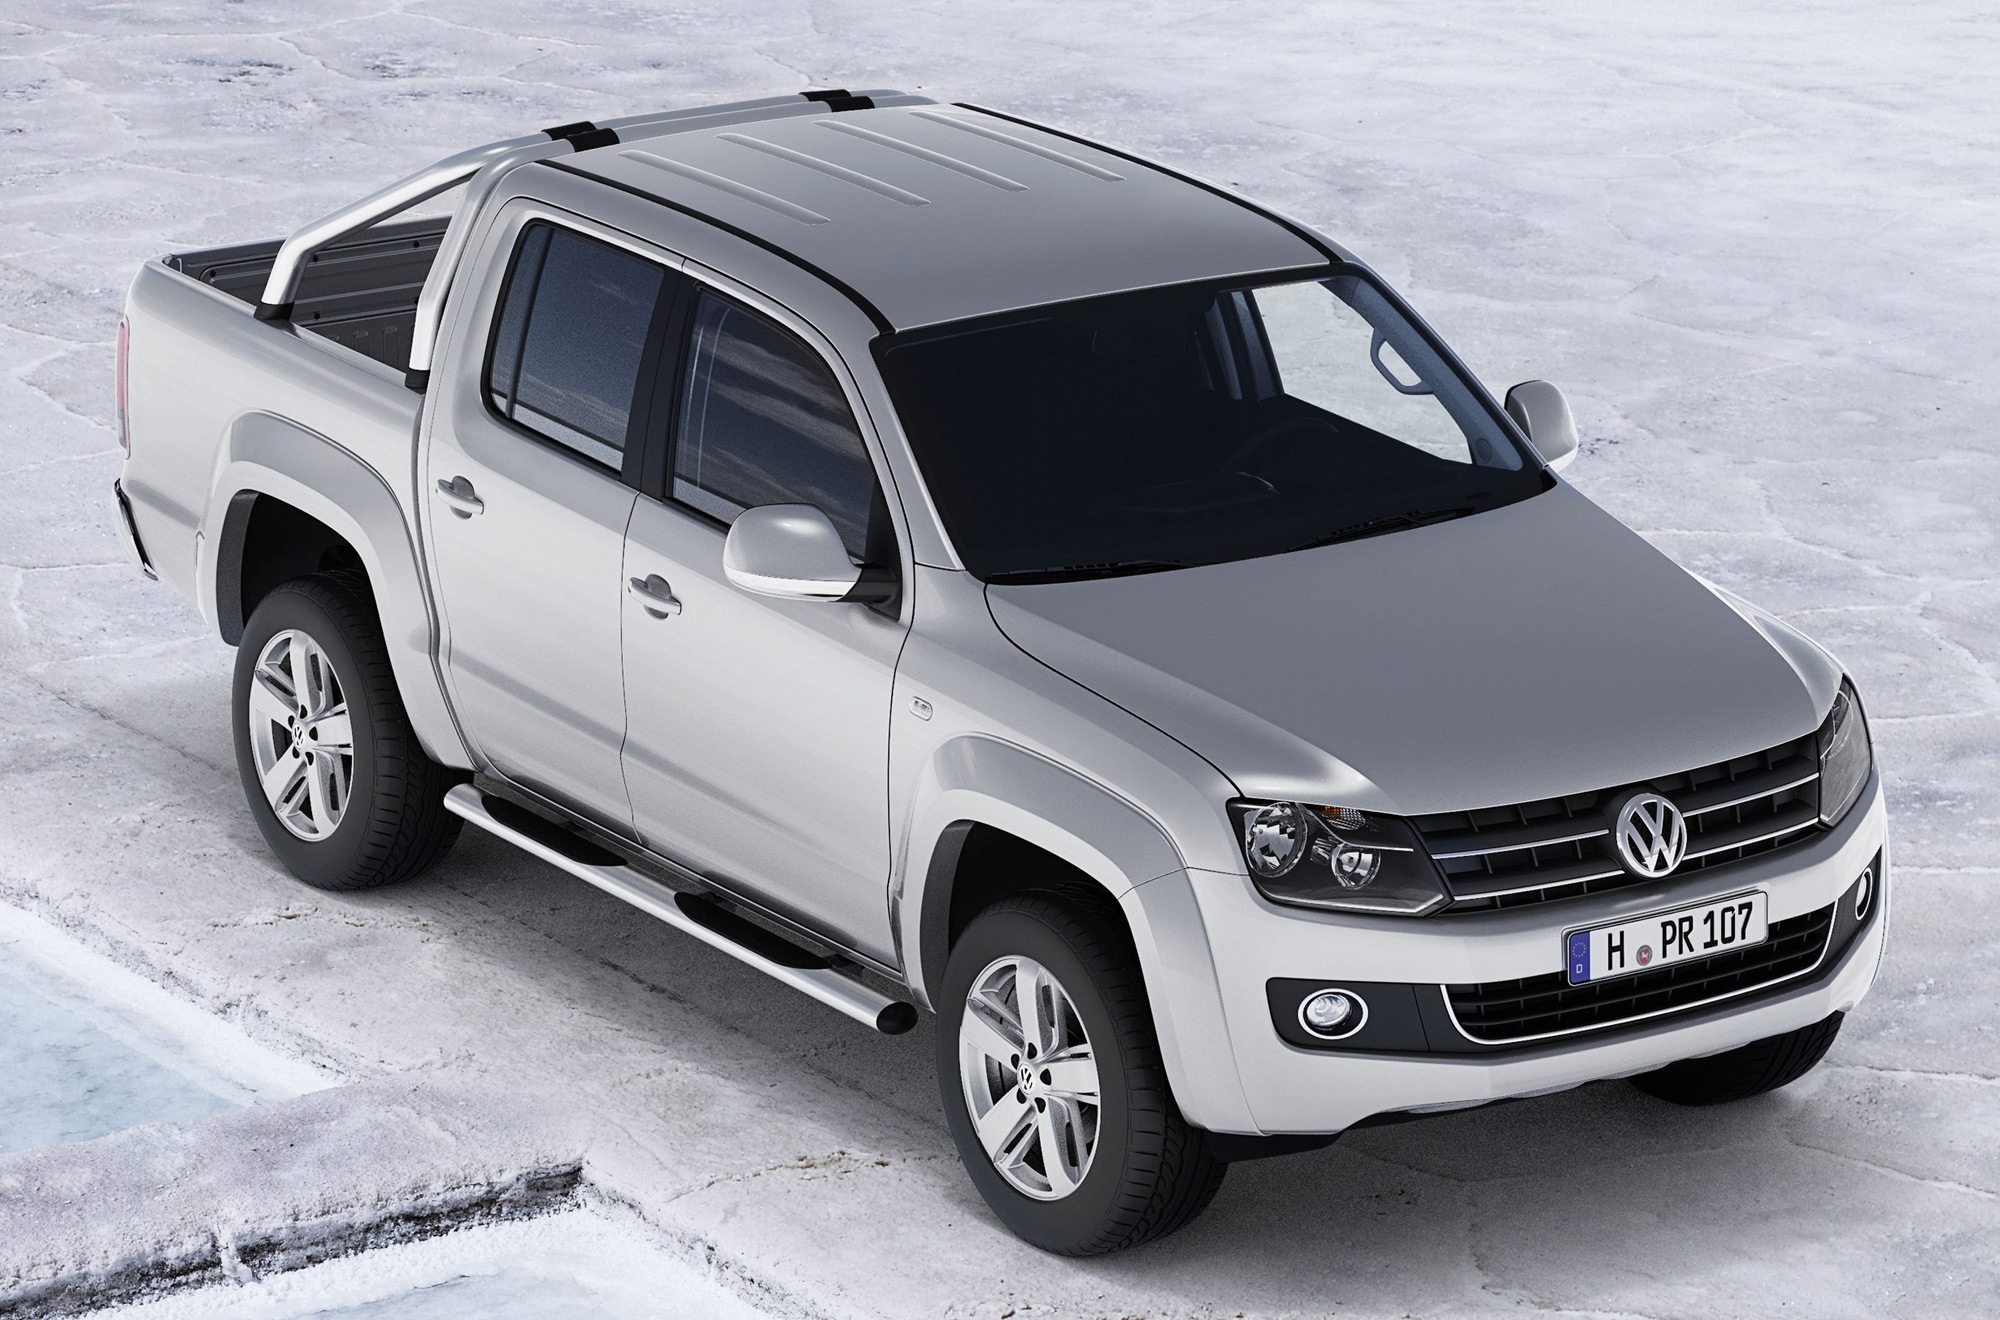 volkswagen amarok picks up international award. Black Bedroom Furniture Sets. Home Design Ideas